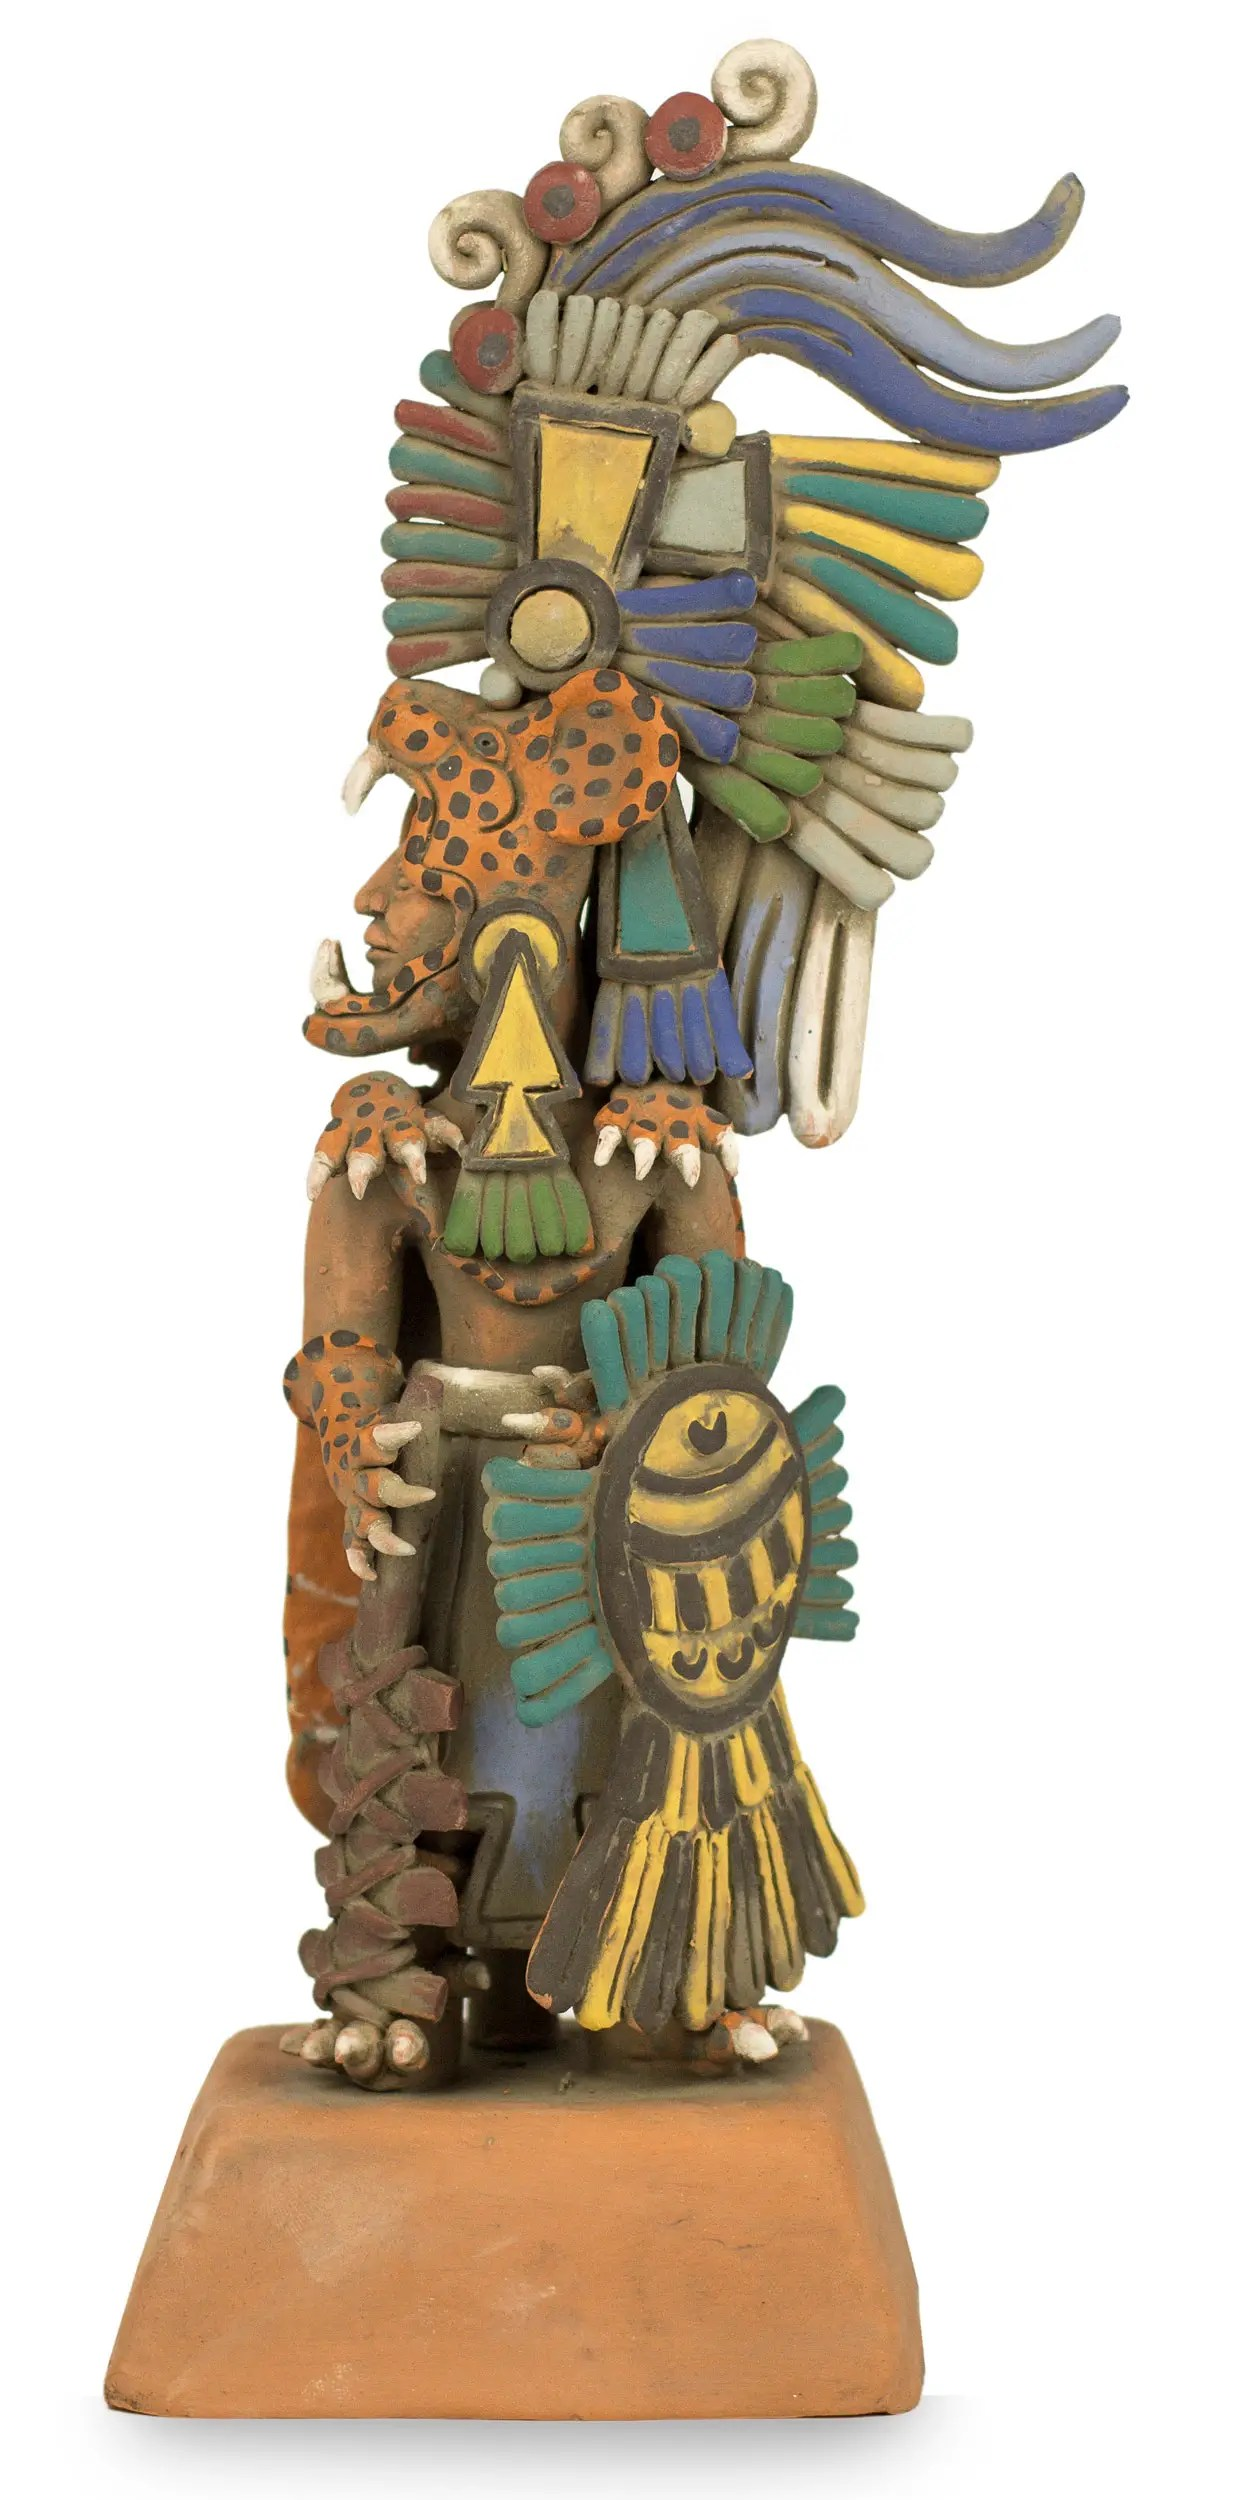 Unicef UK Market Aztec Museum Replica Ceramic Sculpture